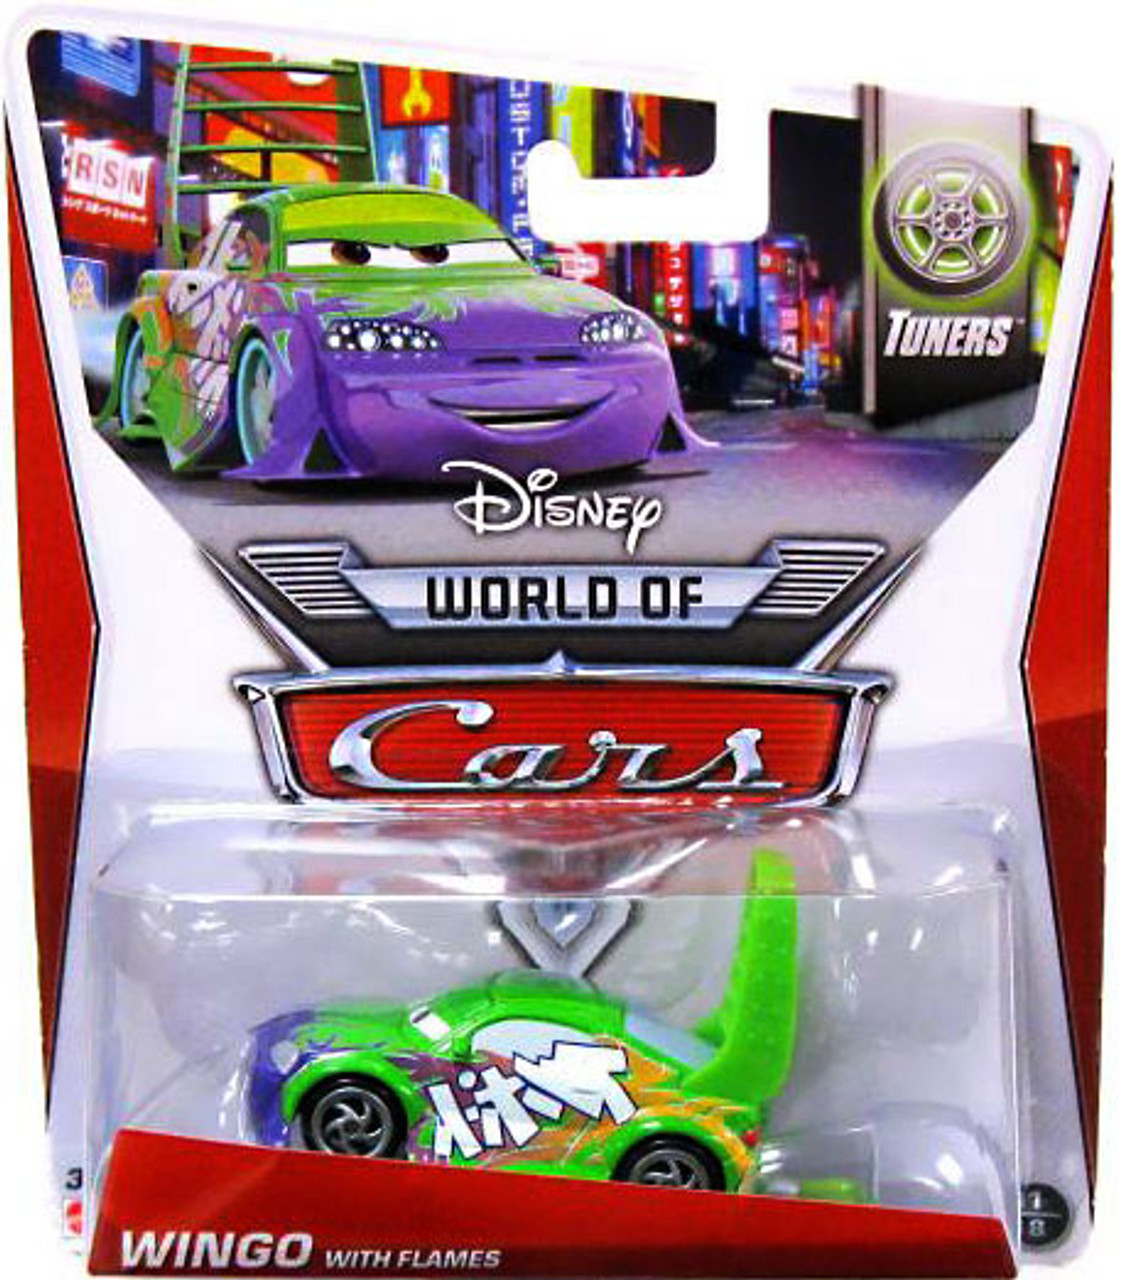 Disney Cars The World of Cars Series 2 Wingo with Flames Diecast Car #1 of 8